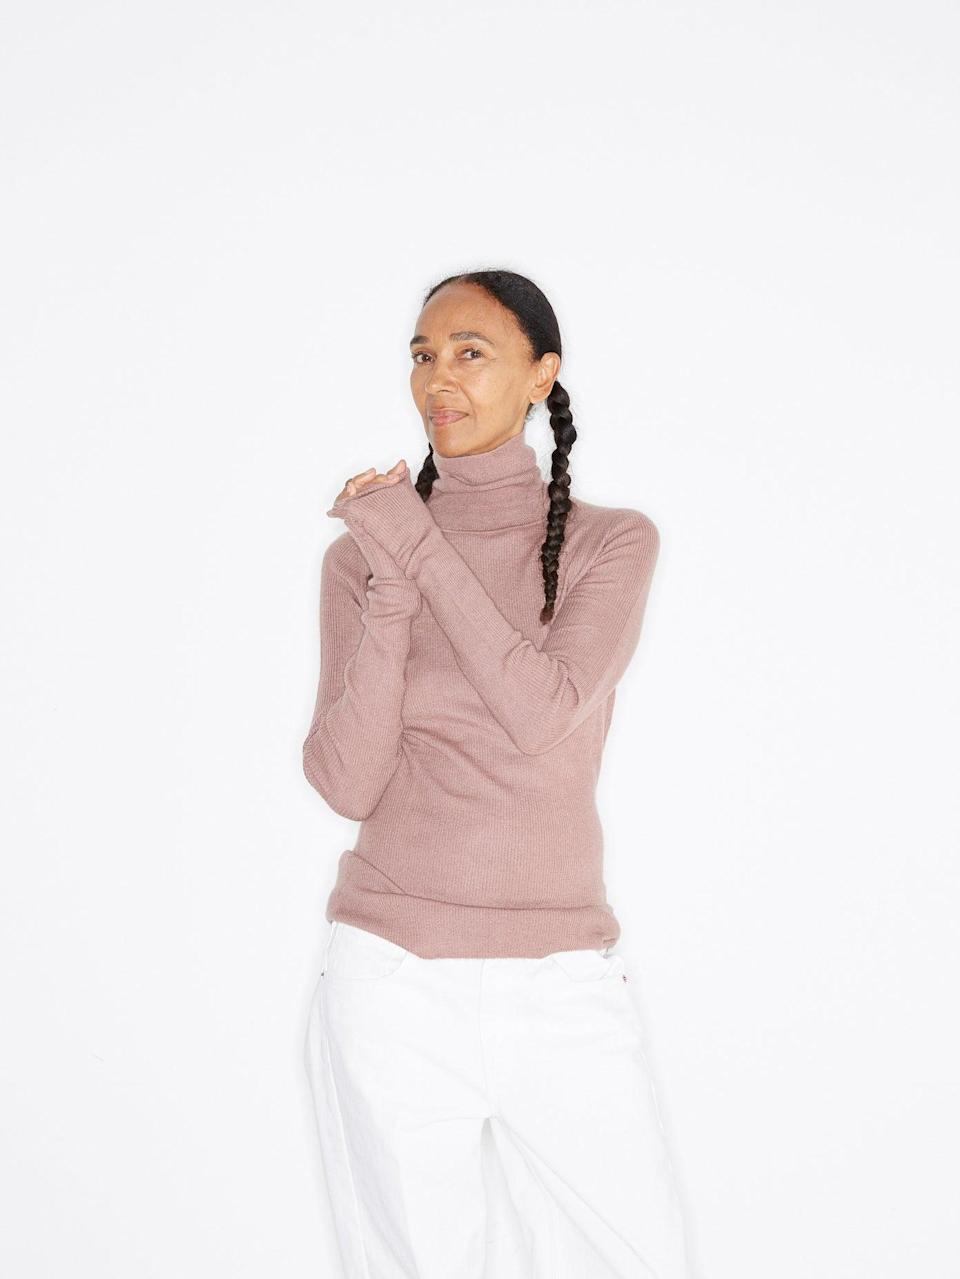 "<br><br><strong>Raey</strong> Roll-Neck Fine-Rib Cashmere Sweater, $, available at <a href=""https://www.matchesfashion.com/products/Raey-Roll-neck-fine-rib-cashmere-sweater-1237968"" rel=""nofollow noopener"" target=""_blank"" data-ylk=""slk:Matches Fashion"" class=""link rapid-noclick-resp"">Matches Fashion</a>"